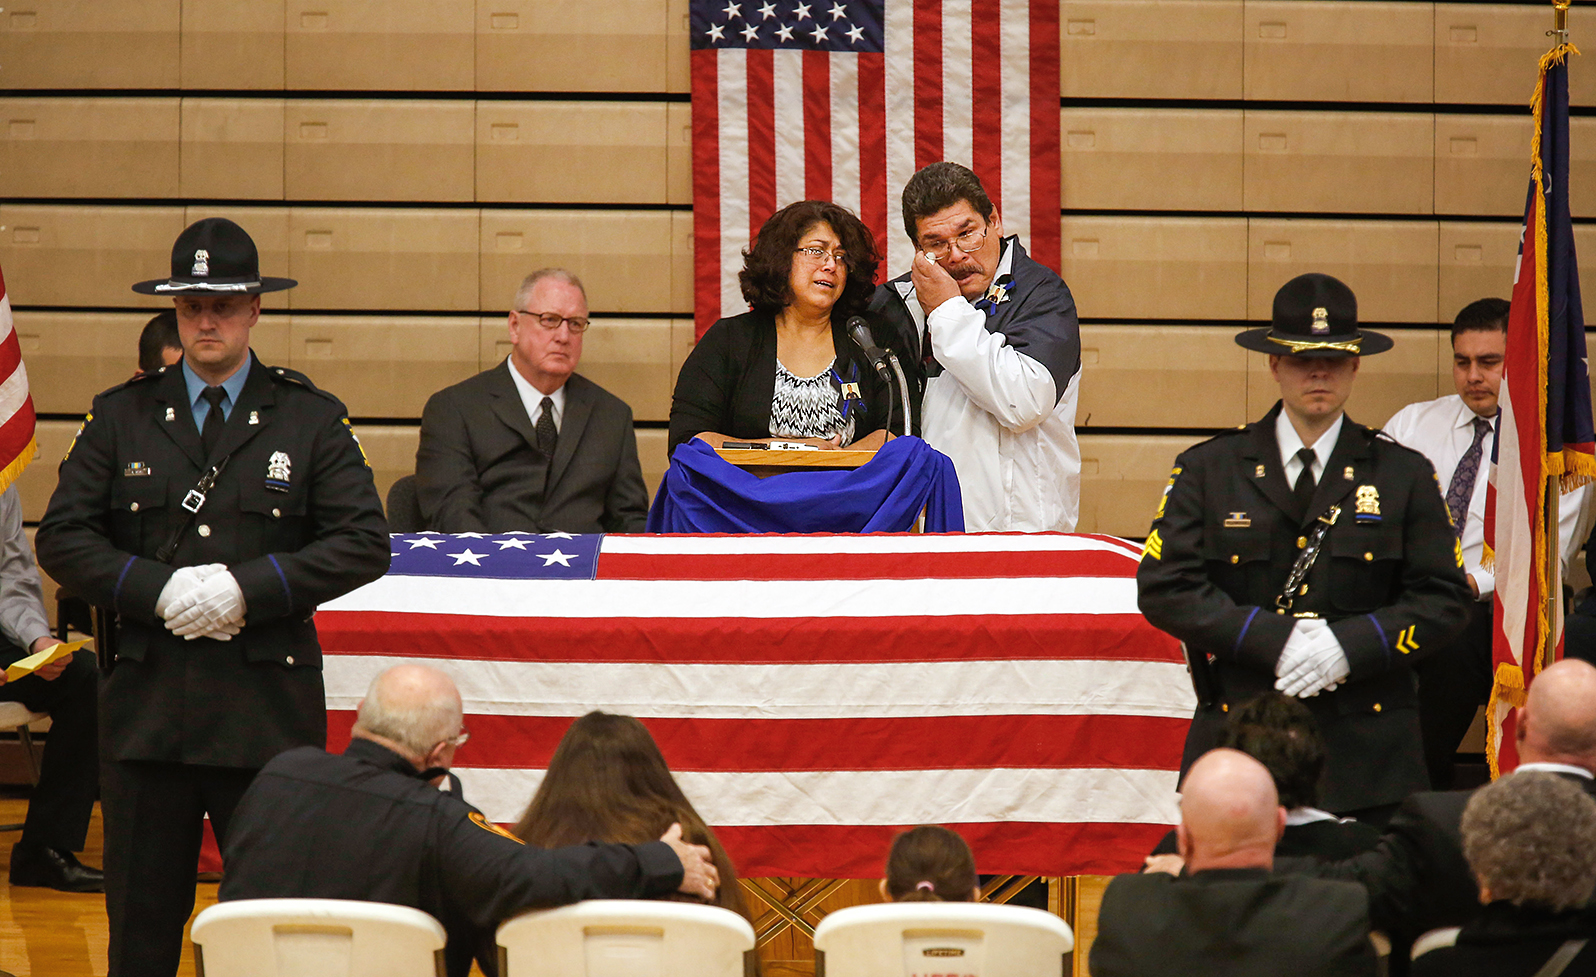 Elmore Police Officer Honored At Service The Blade